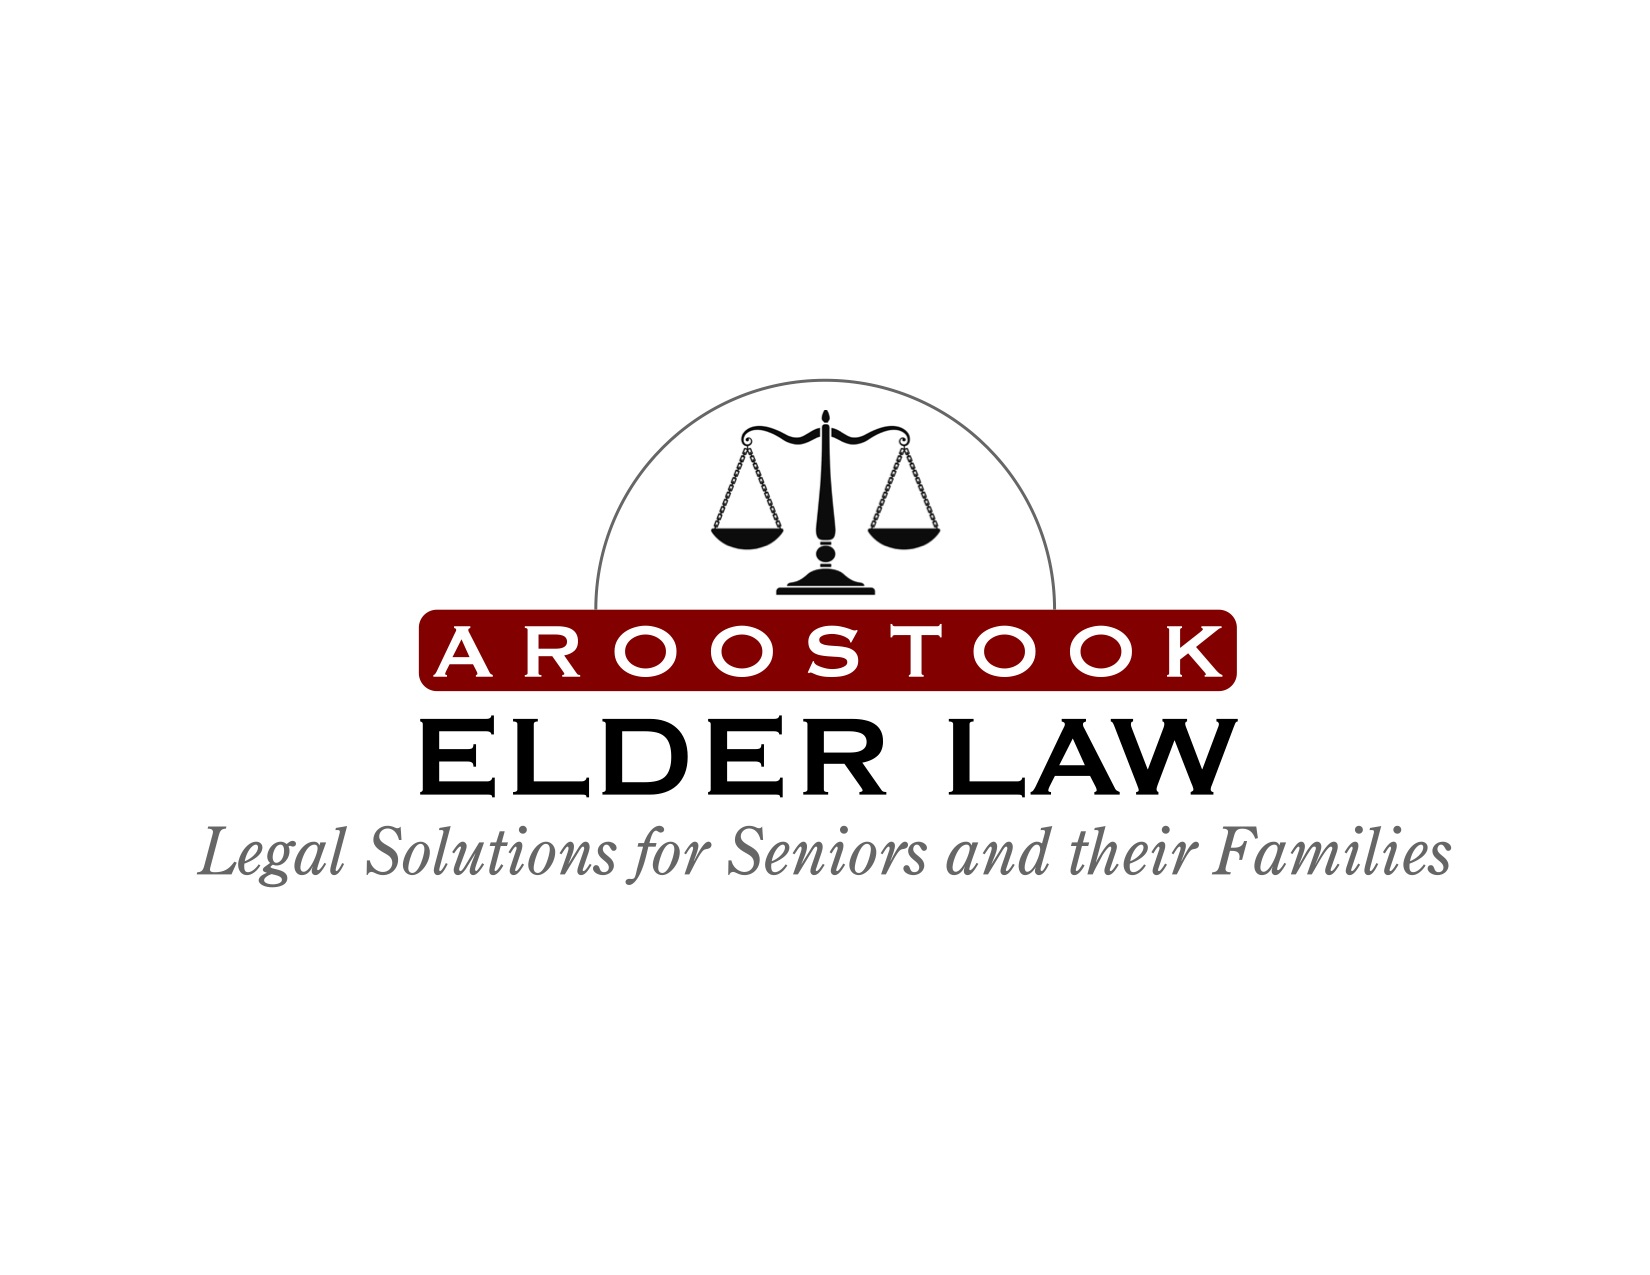 Aroostook Elder Law logo with link to store detail page